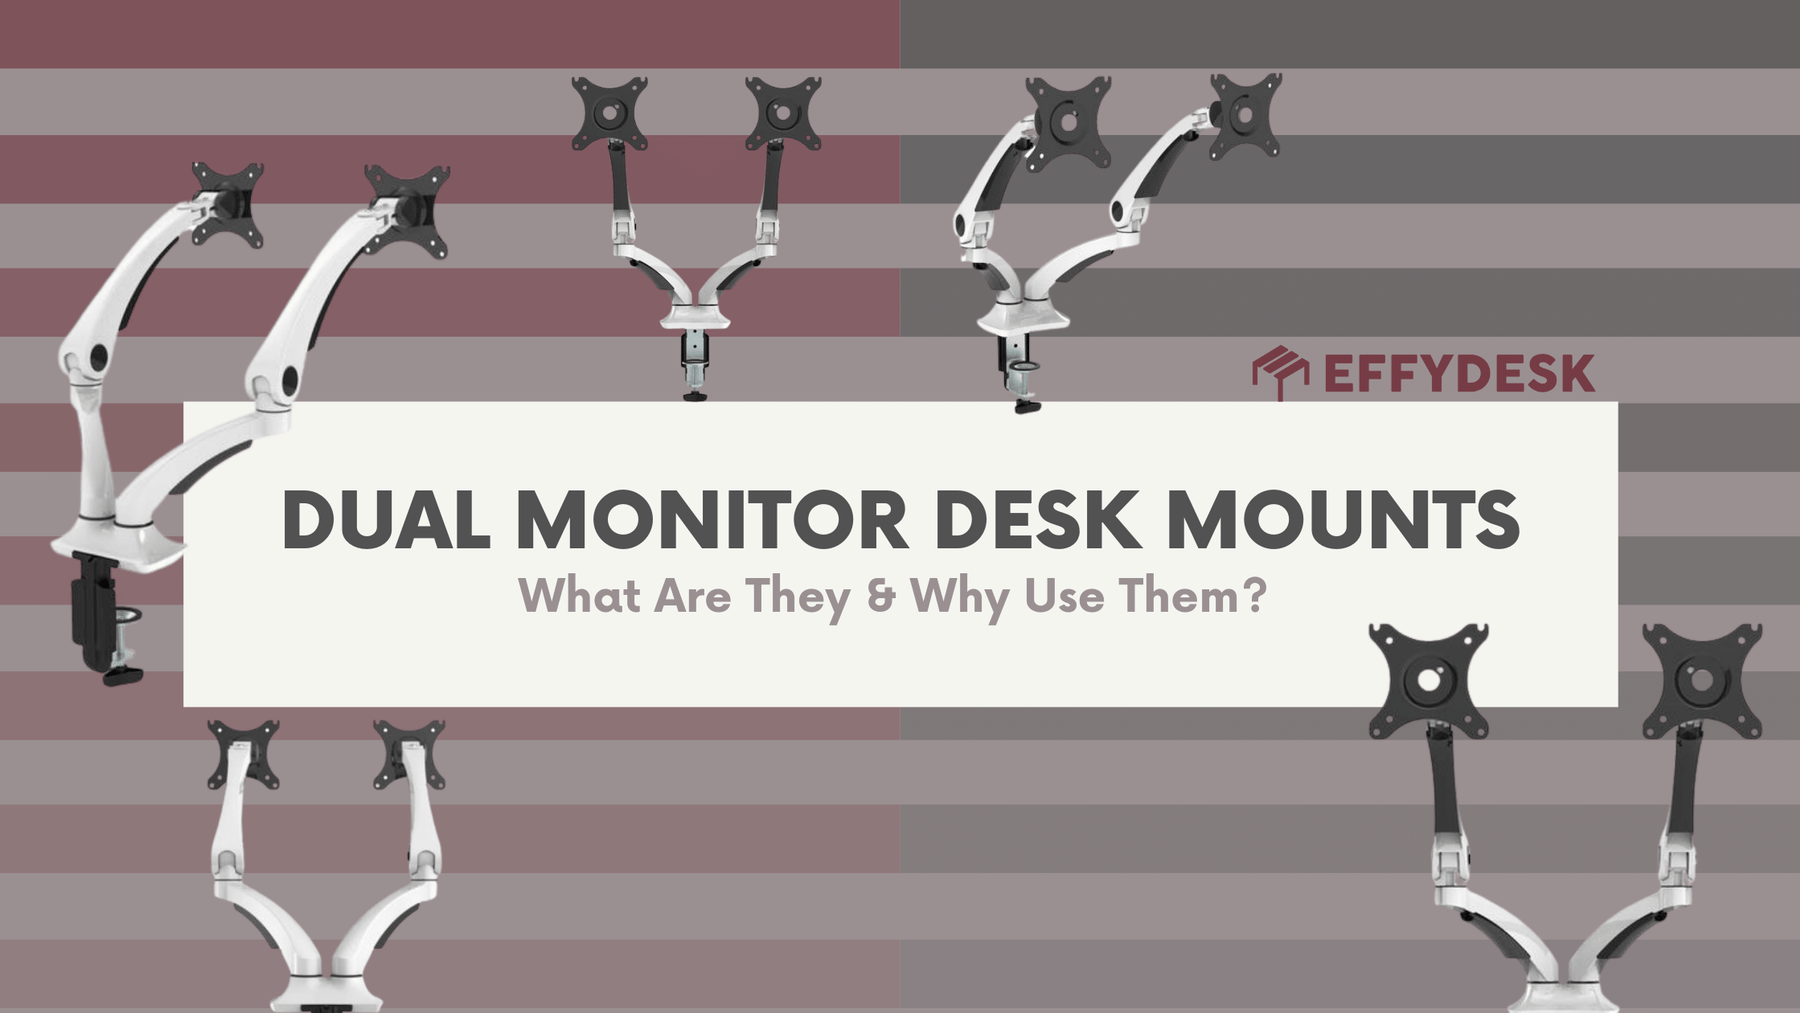 Dual Monitor Desk Mounts - What Are They and Why Use Them?